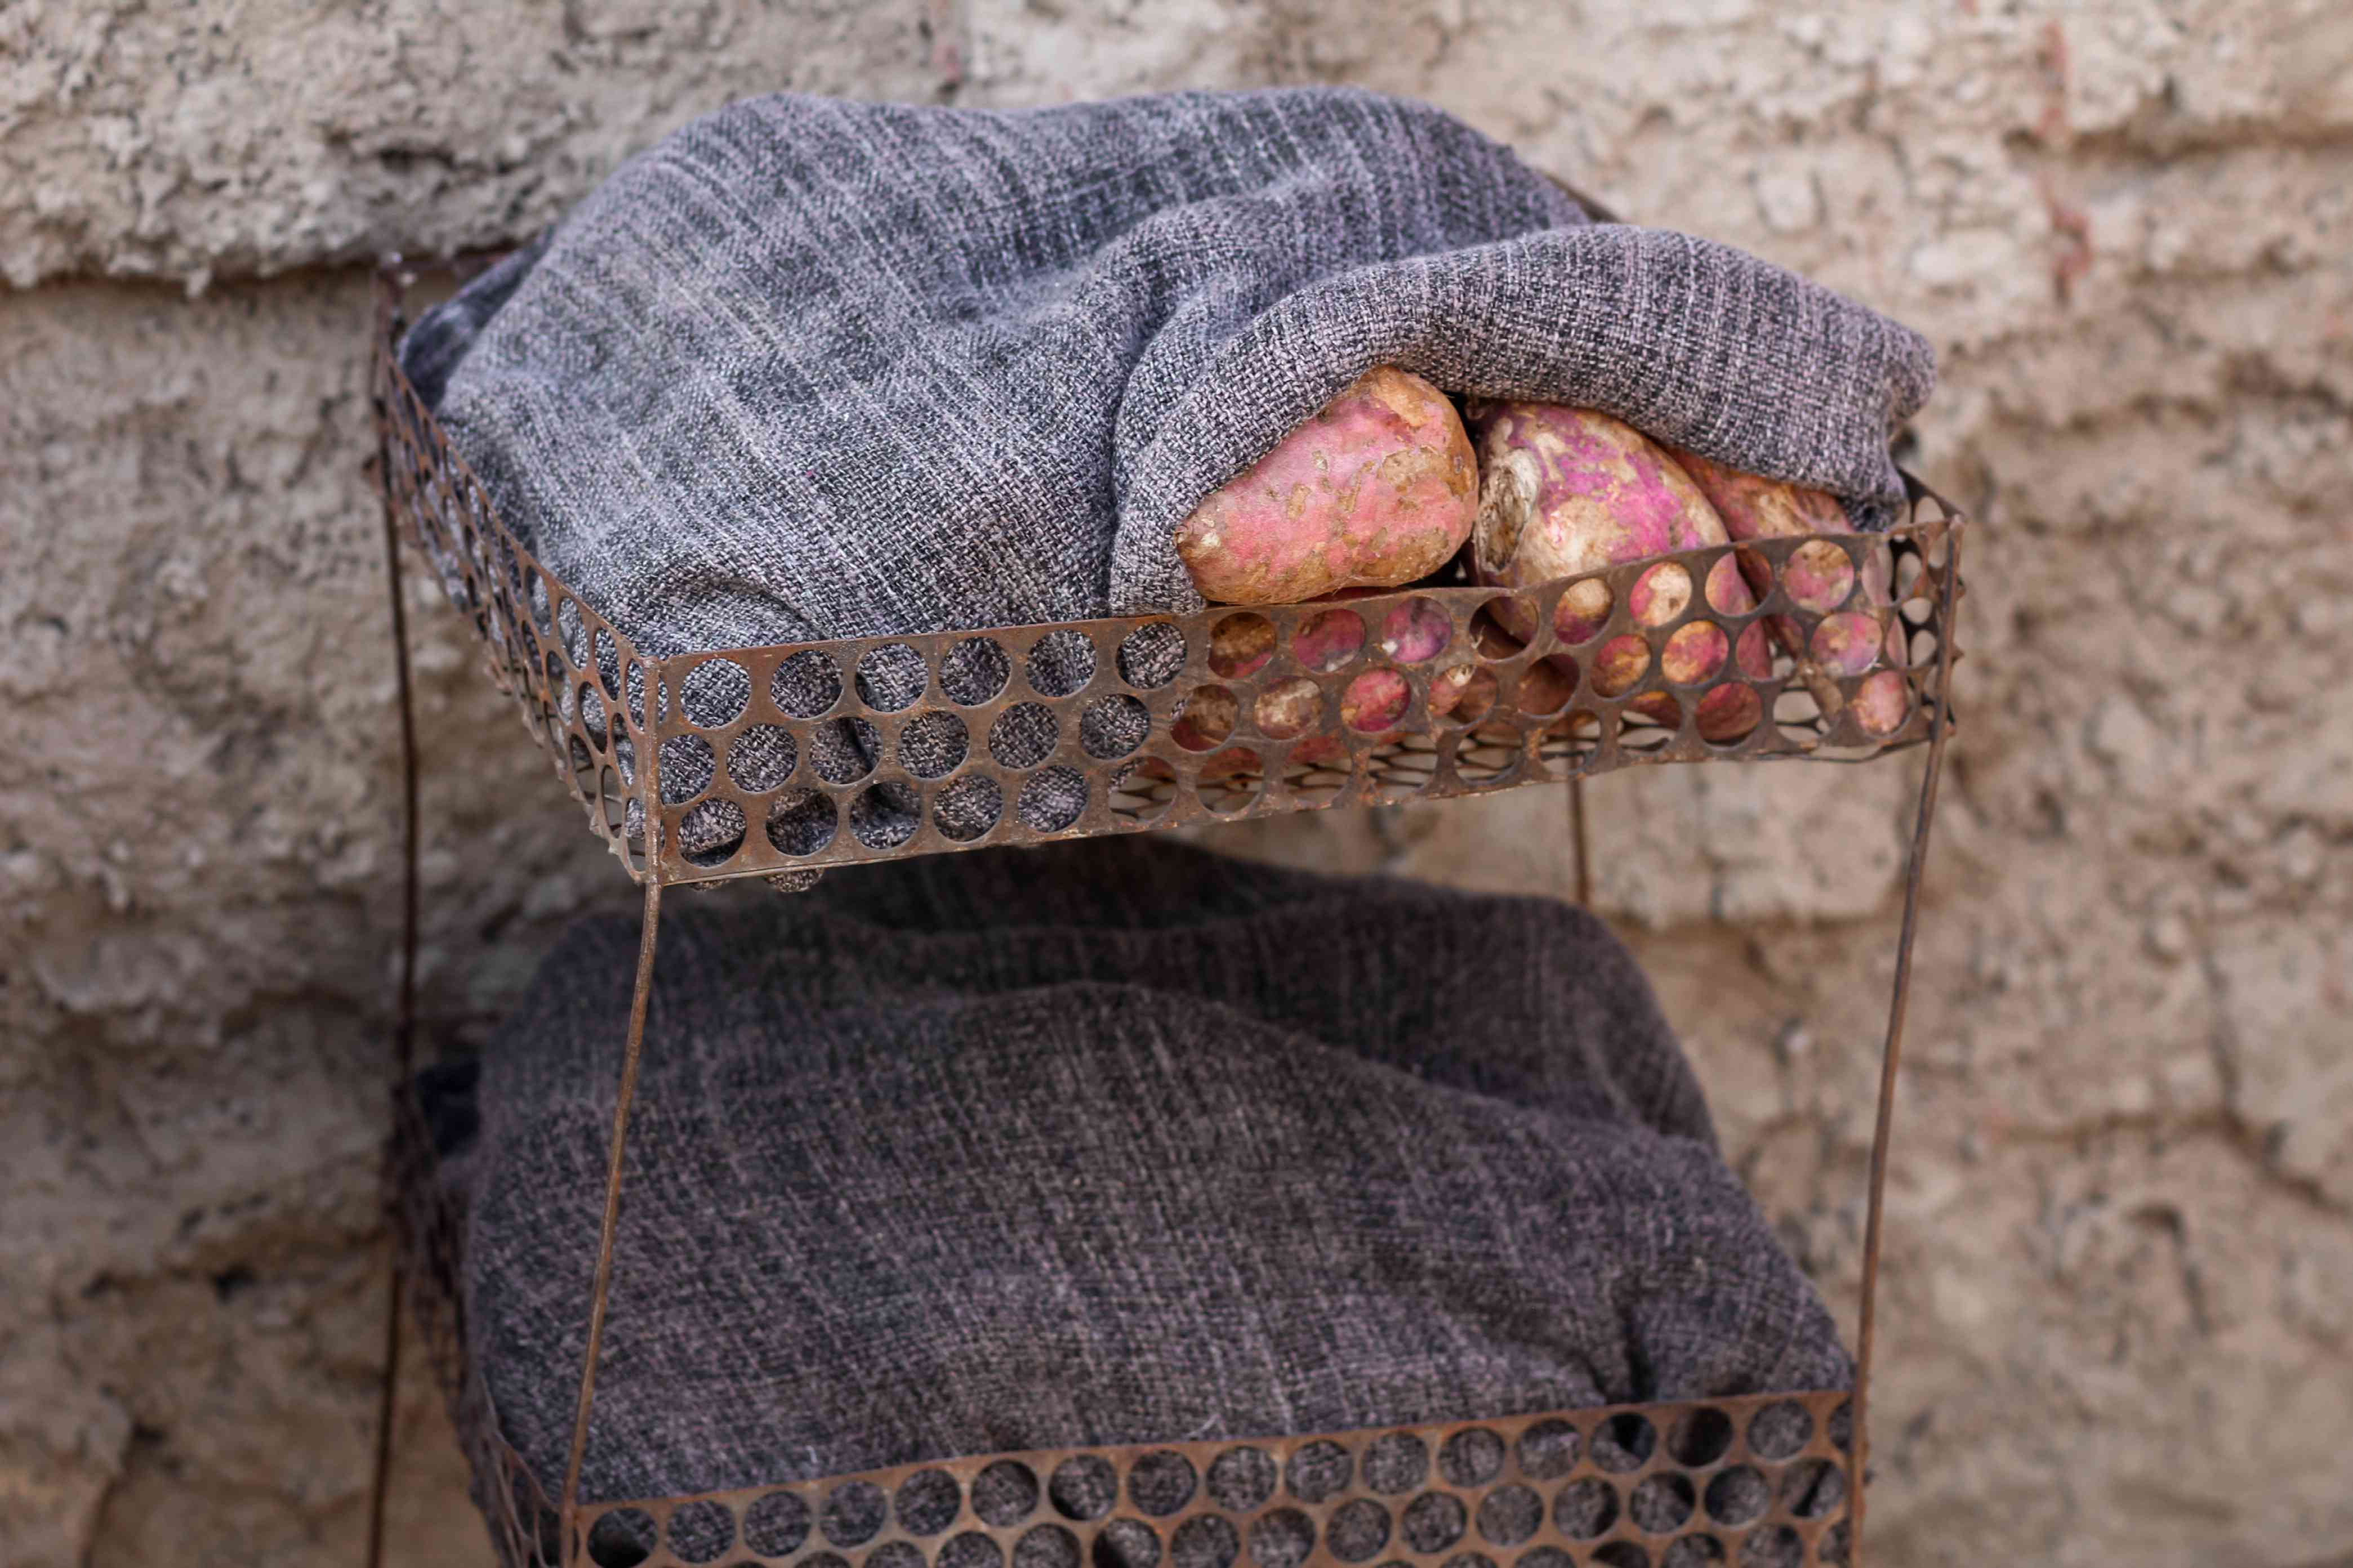 sweet potatoes being stored and cured under heavy fabric outside near stone wall